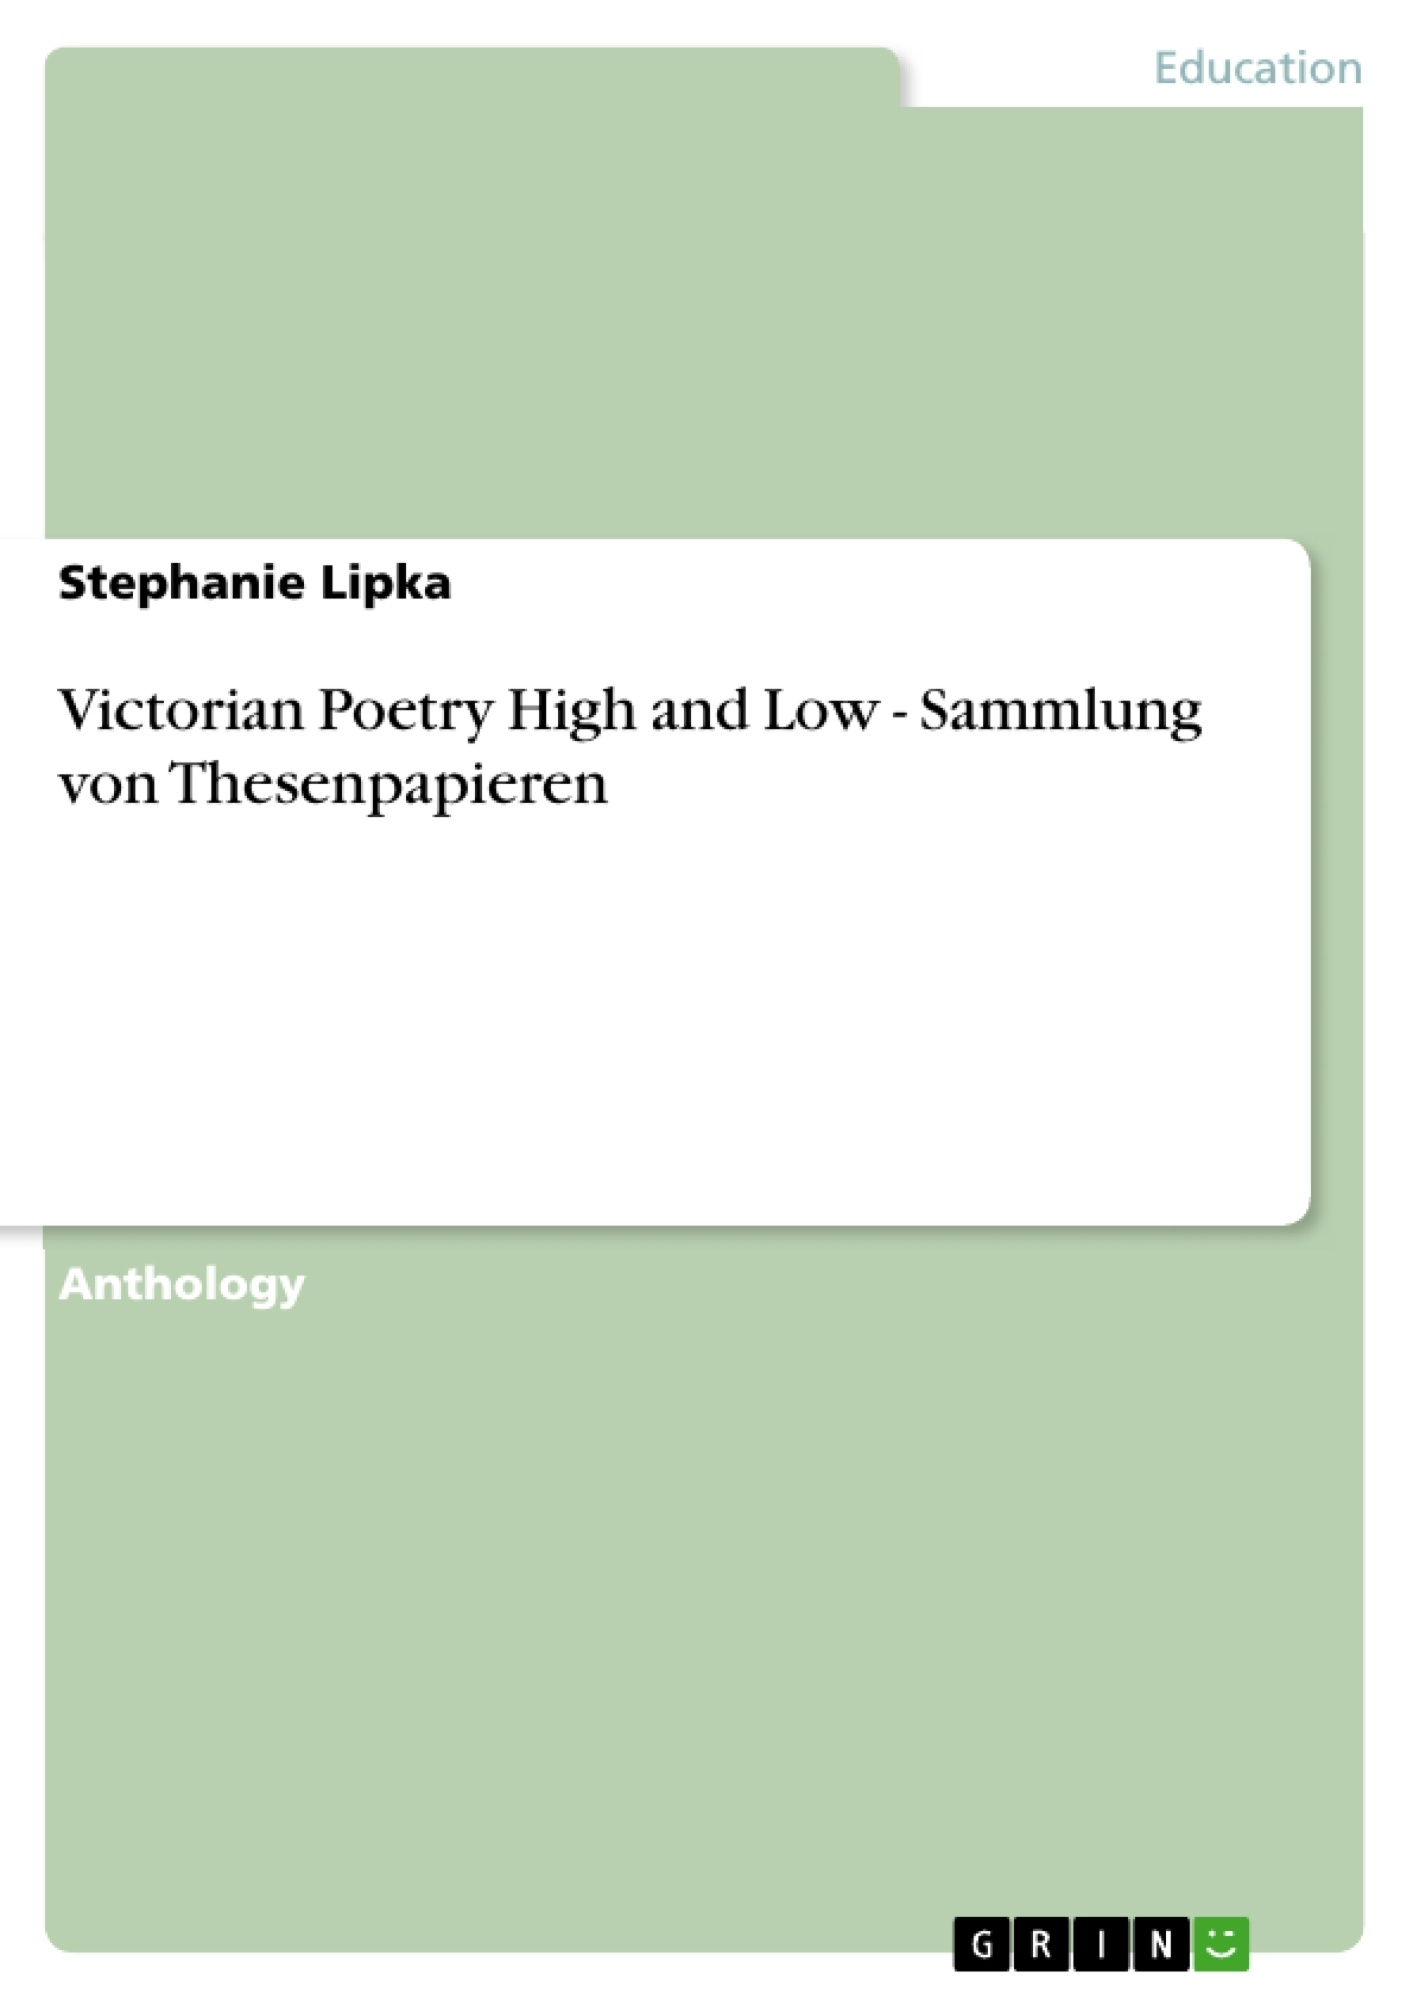 Title: Victorian Poetry High and Low - Sammlung von Thesenpapieren